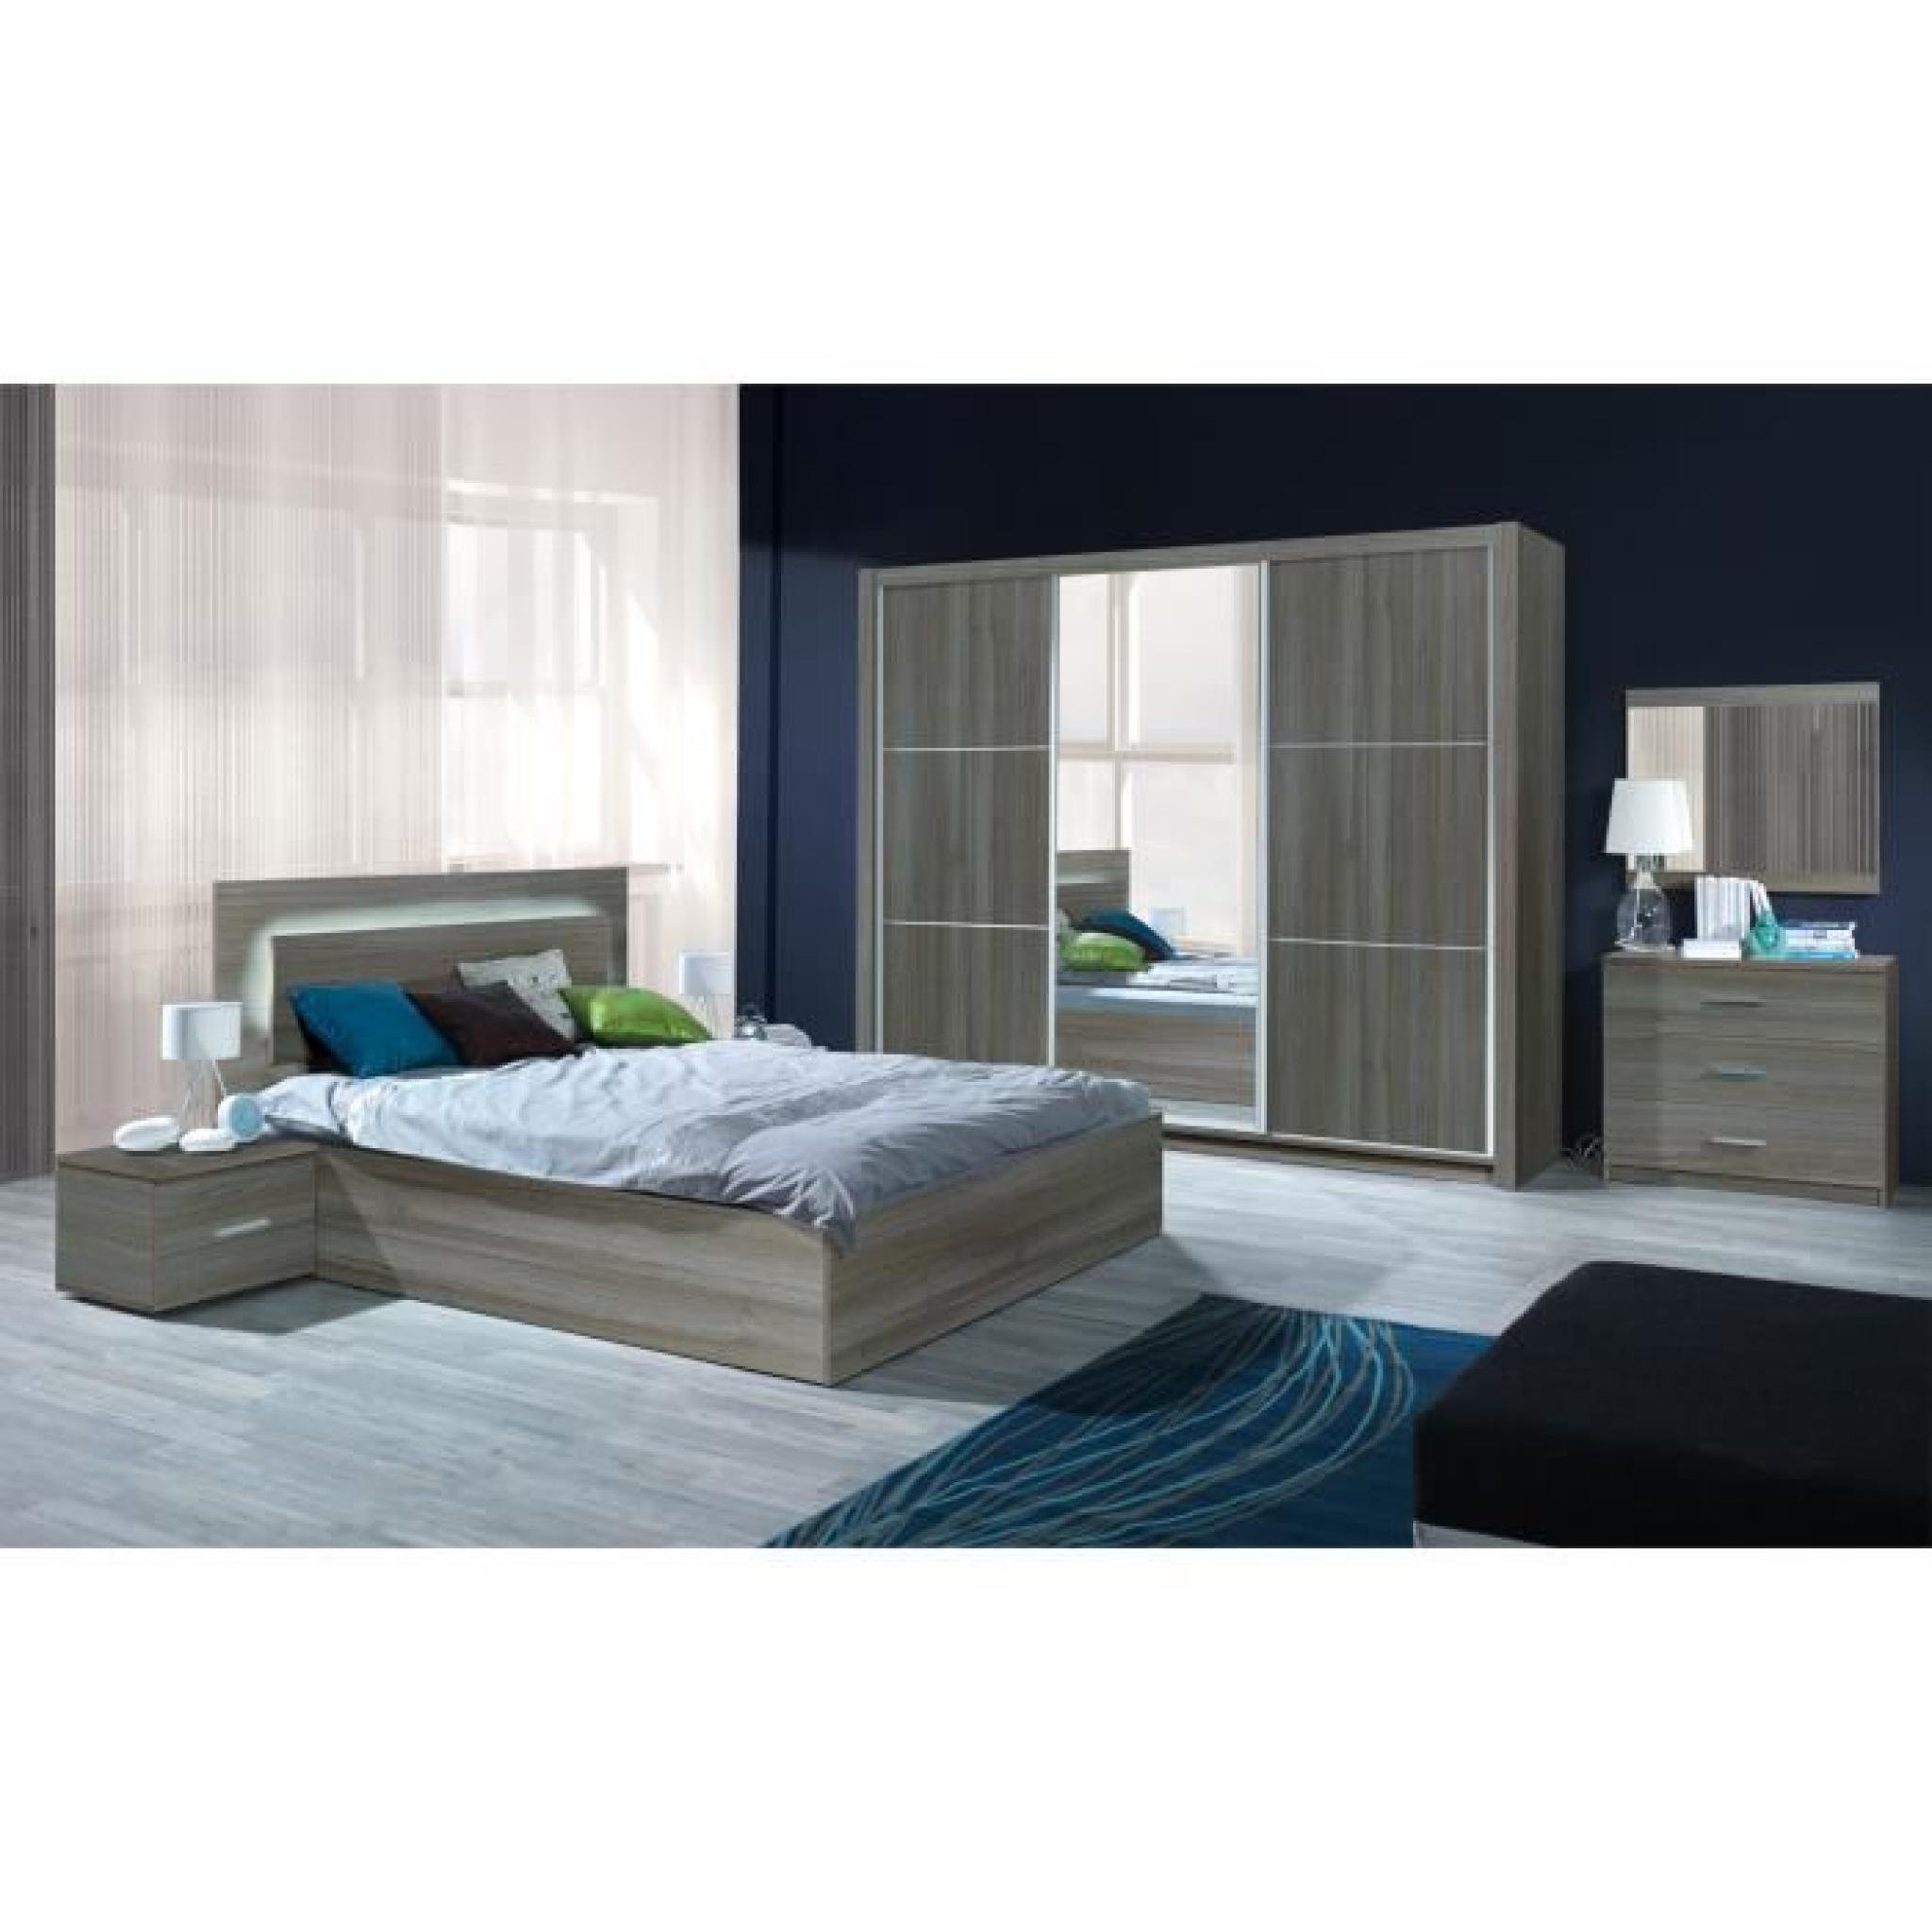 chambre coucher compl te adulte aurelio lit armoire. Black Bedroom Furniture Sets. Home Design Ideas